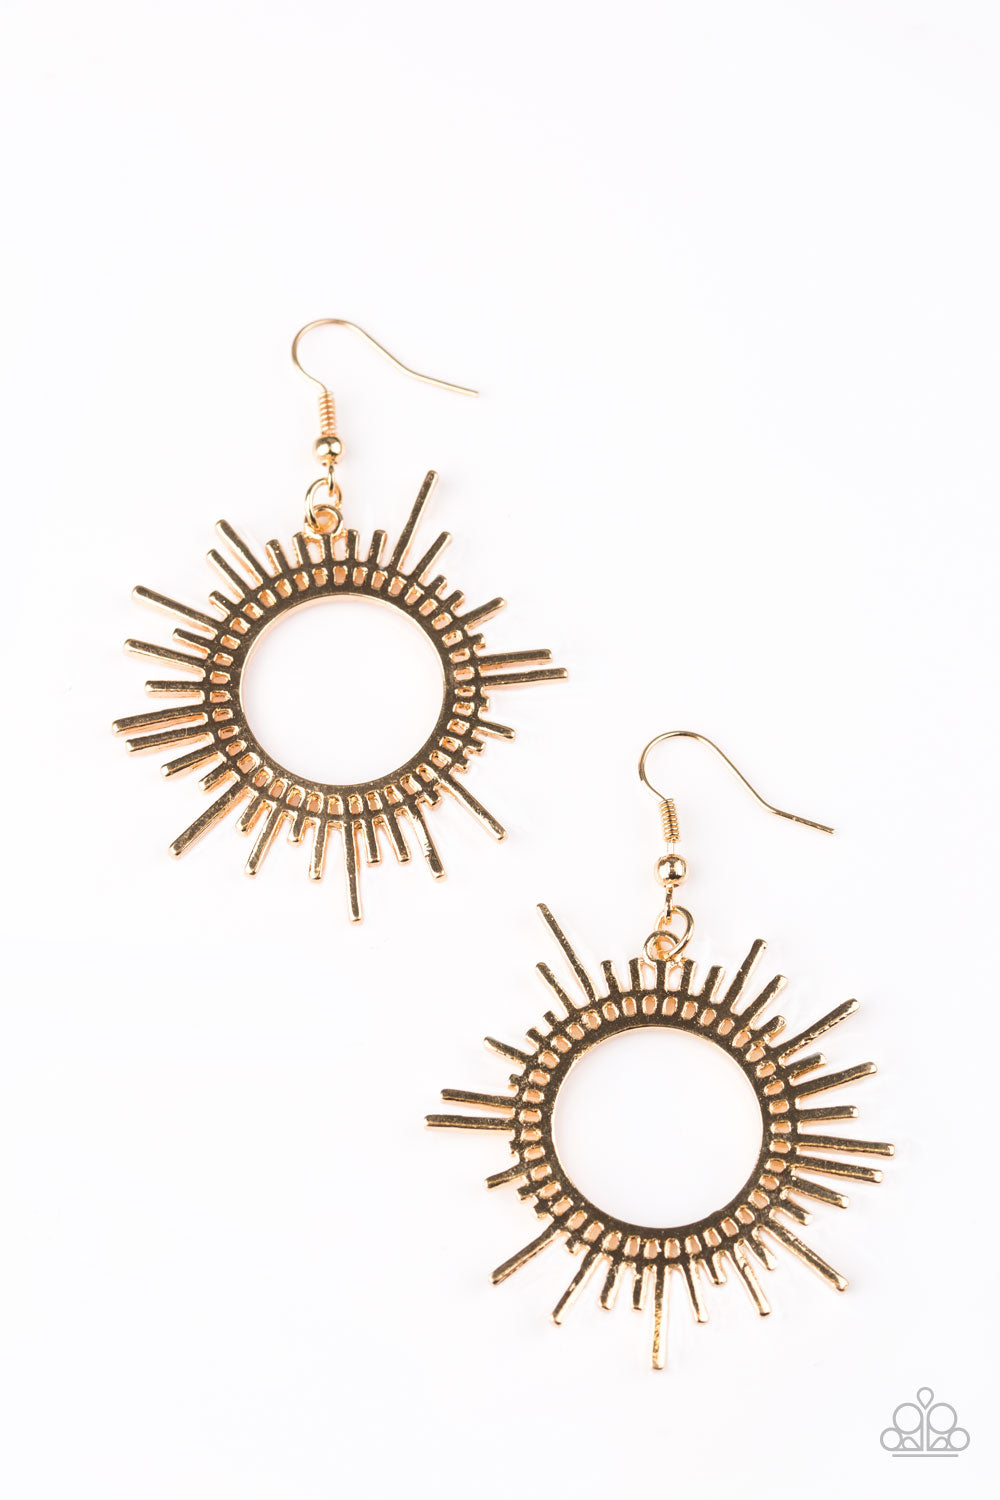 five-dollar-jewelry-all-sizzle-gold-earrings-paparazzi-accessories